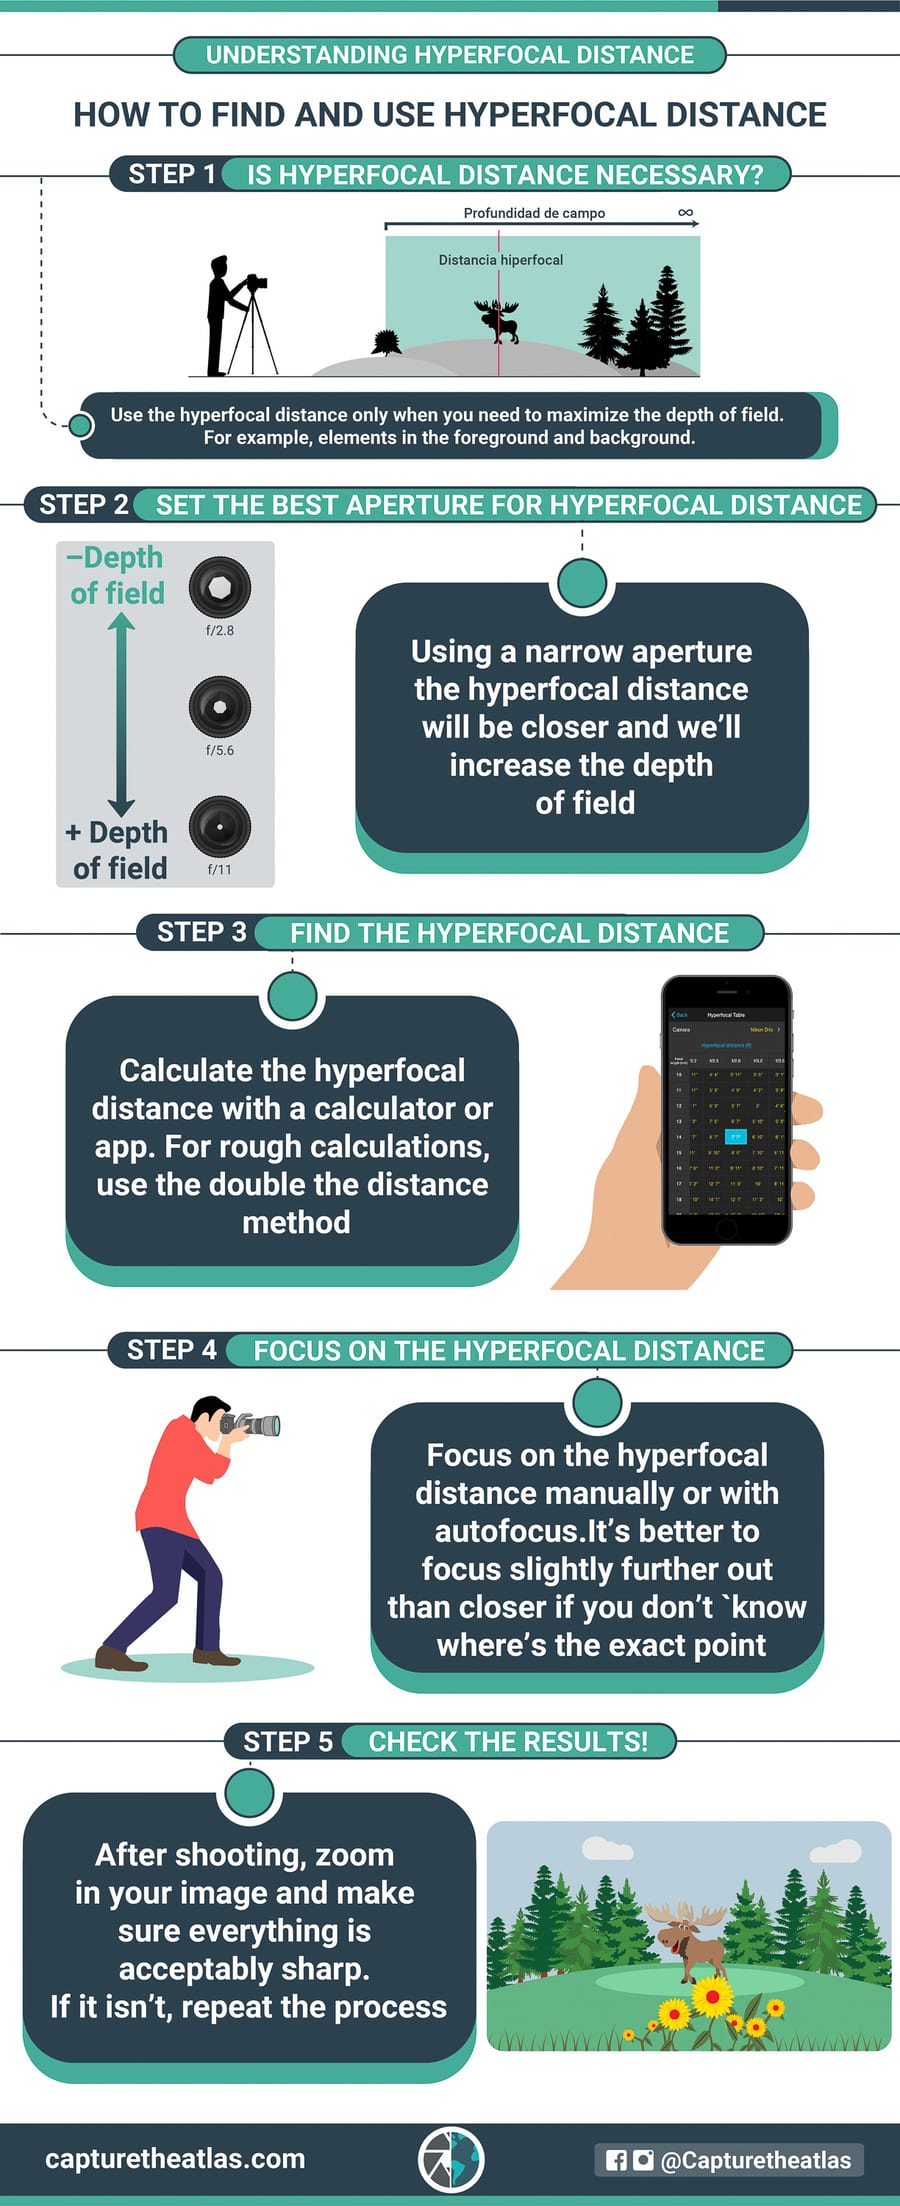 hyperfocal distance infographic